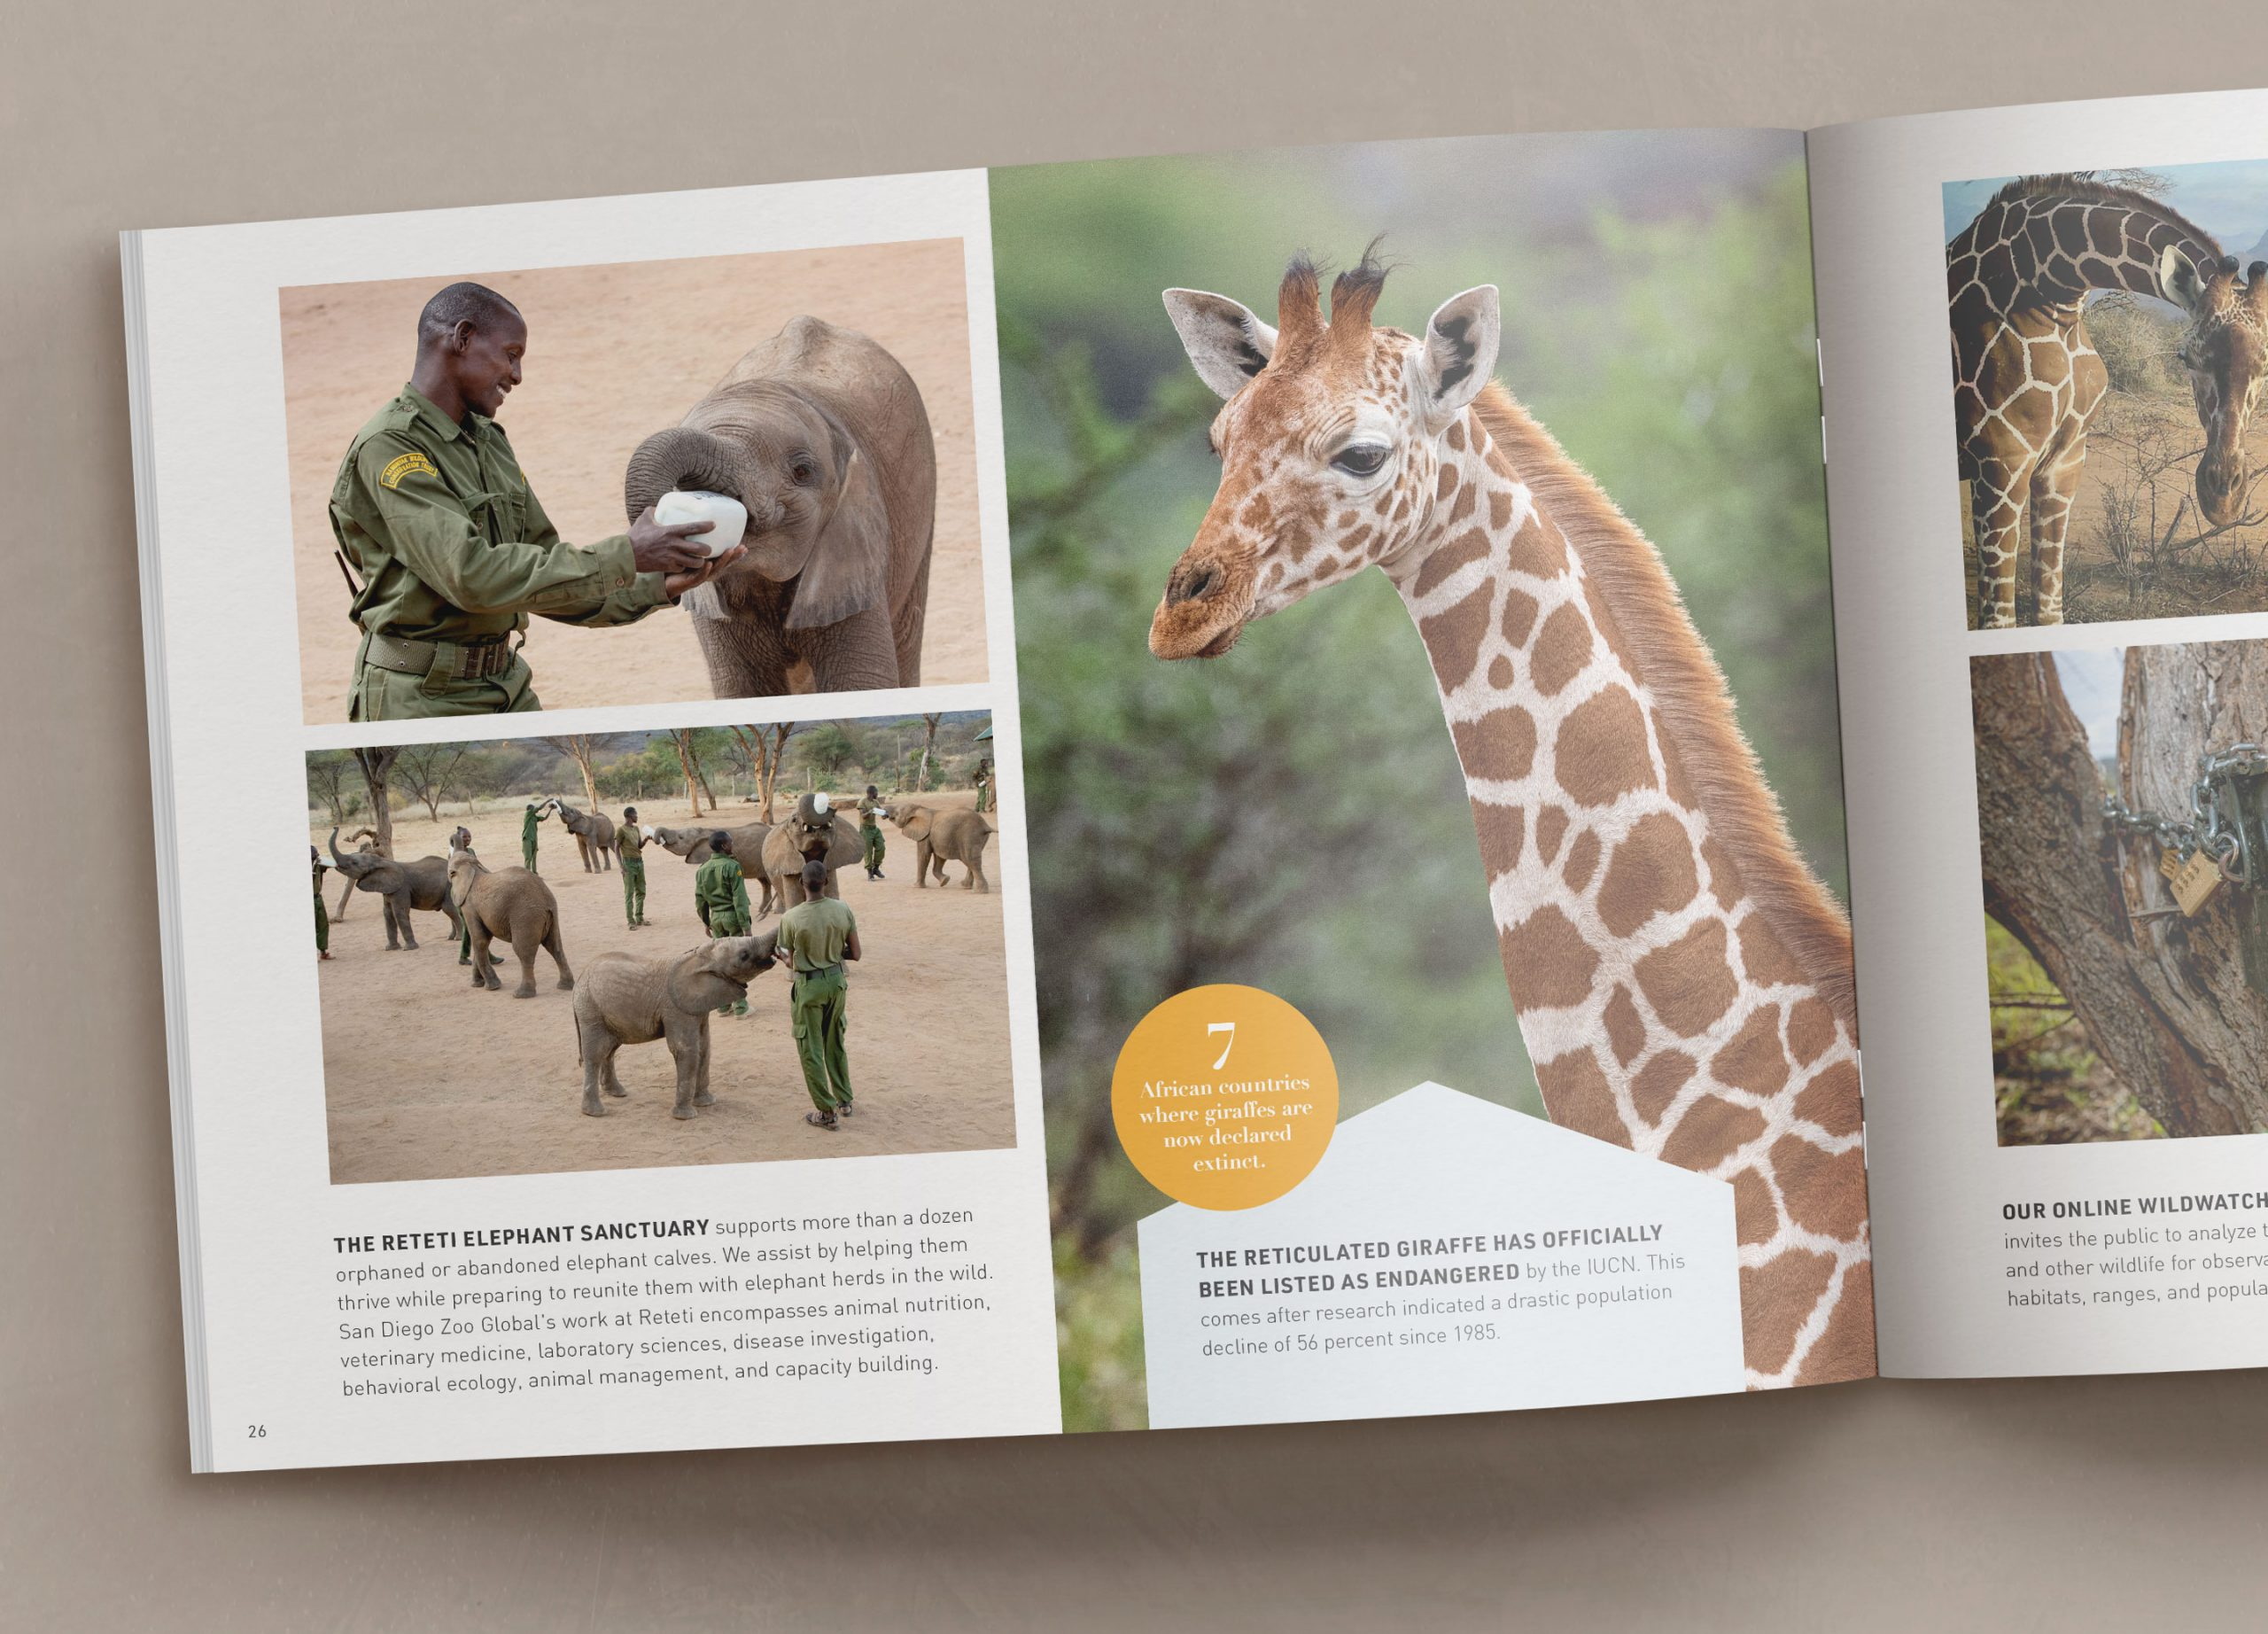 San Diego Zoo Global Institute for Conservation Research: Saving Species Worldwide